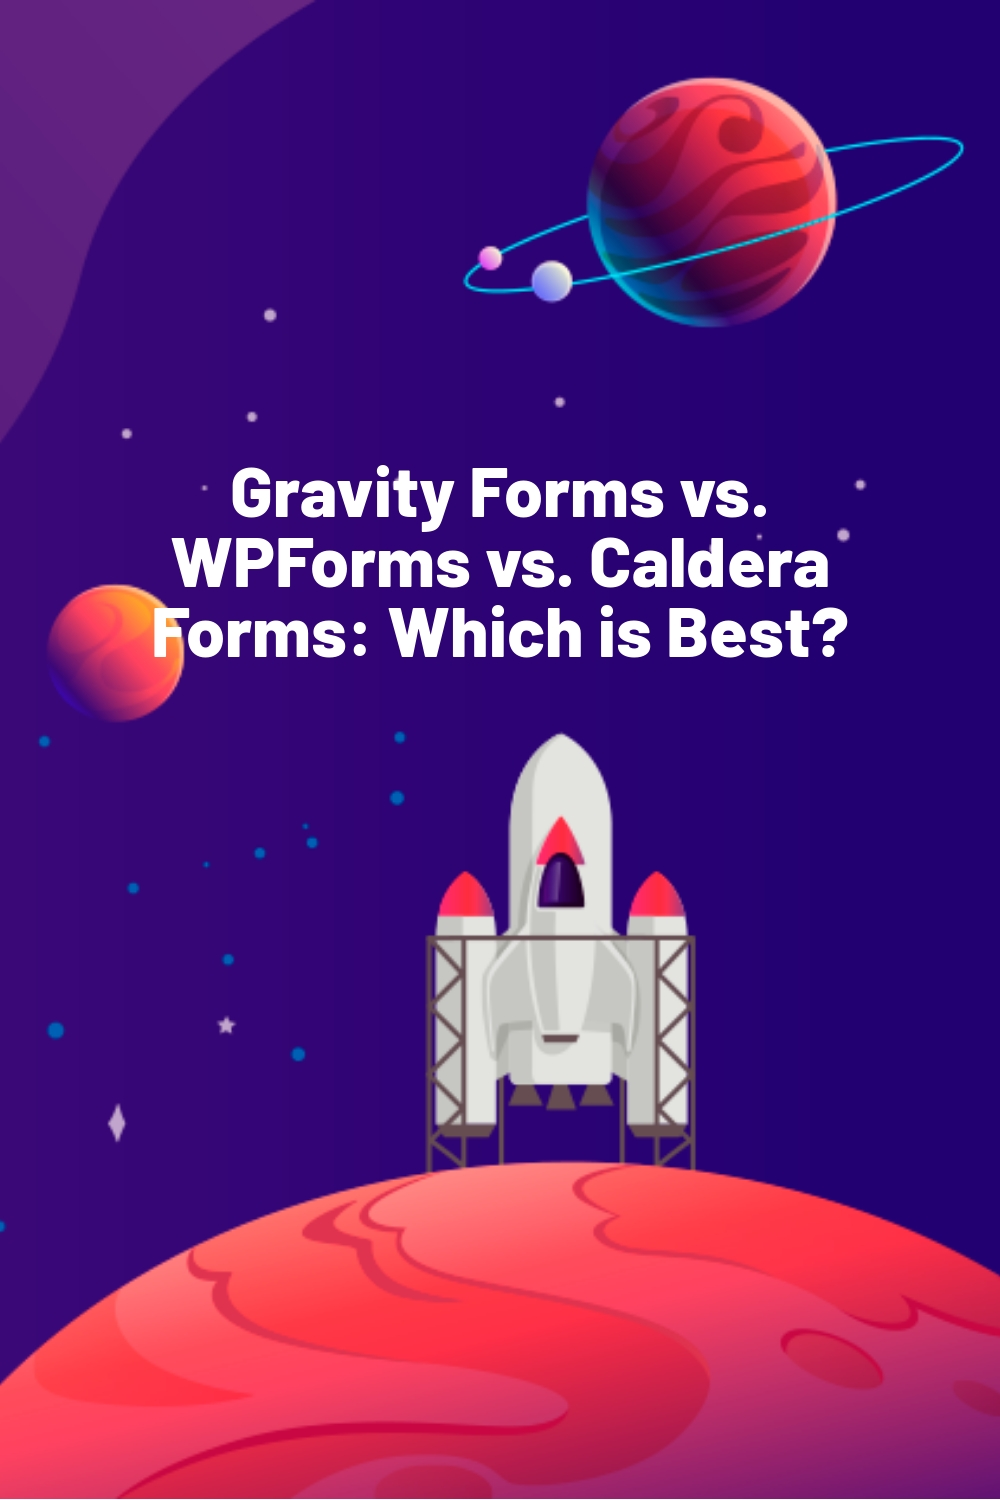 Gravity Forms vs. WPForms vs. Caldera Forms: Which is Best?